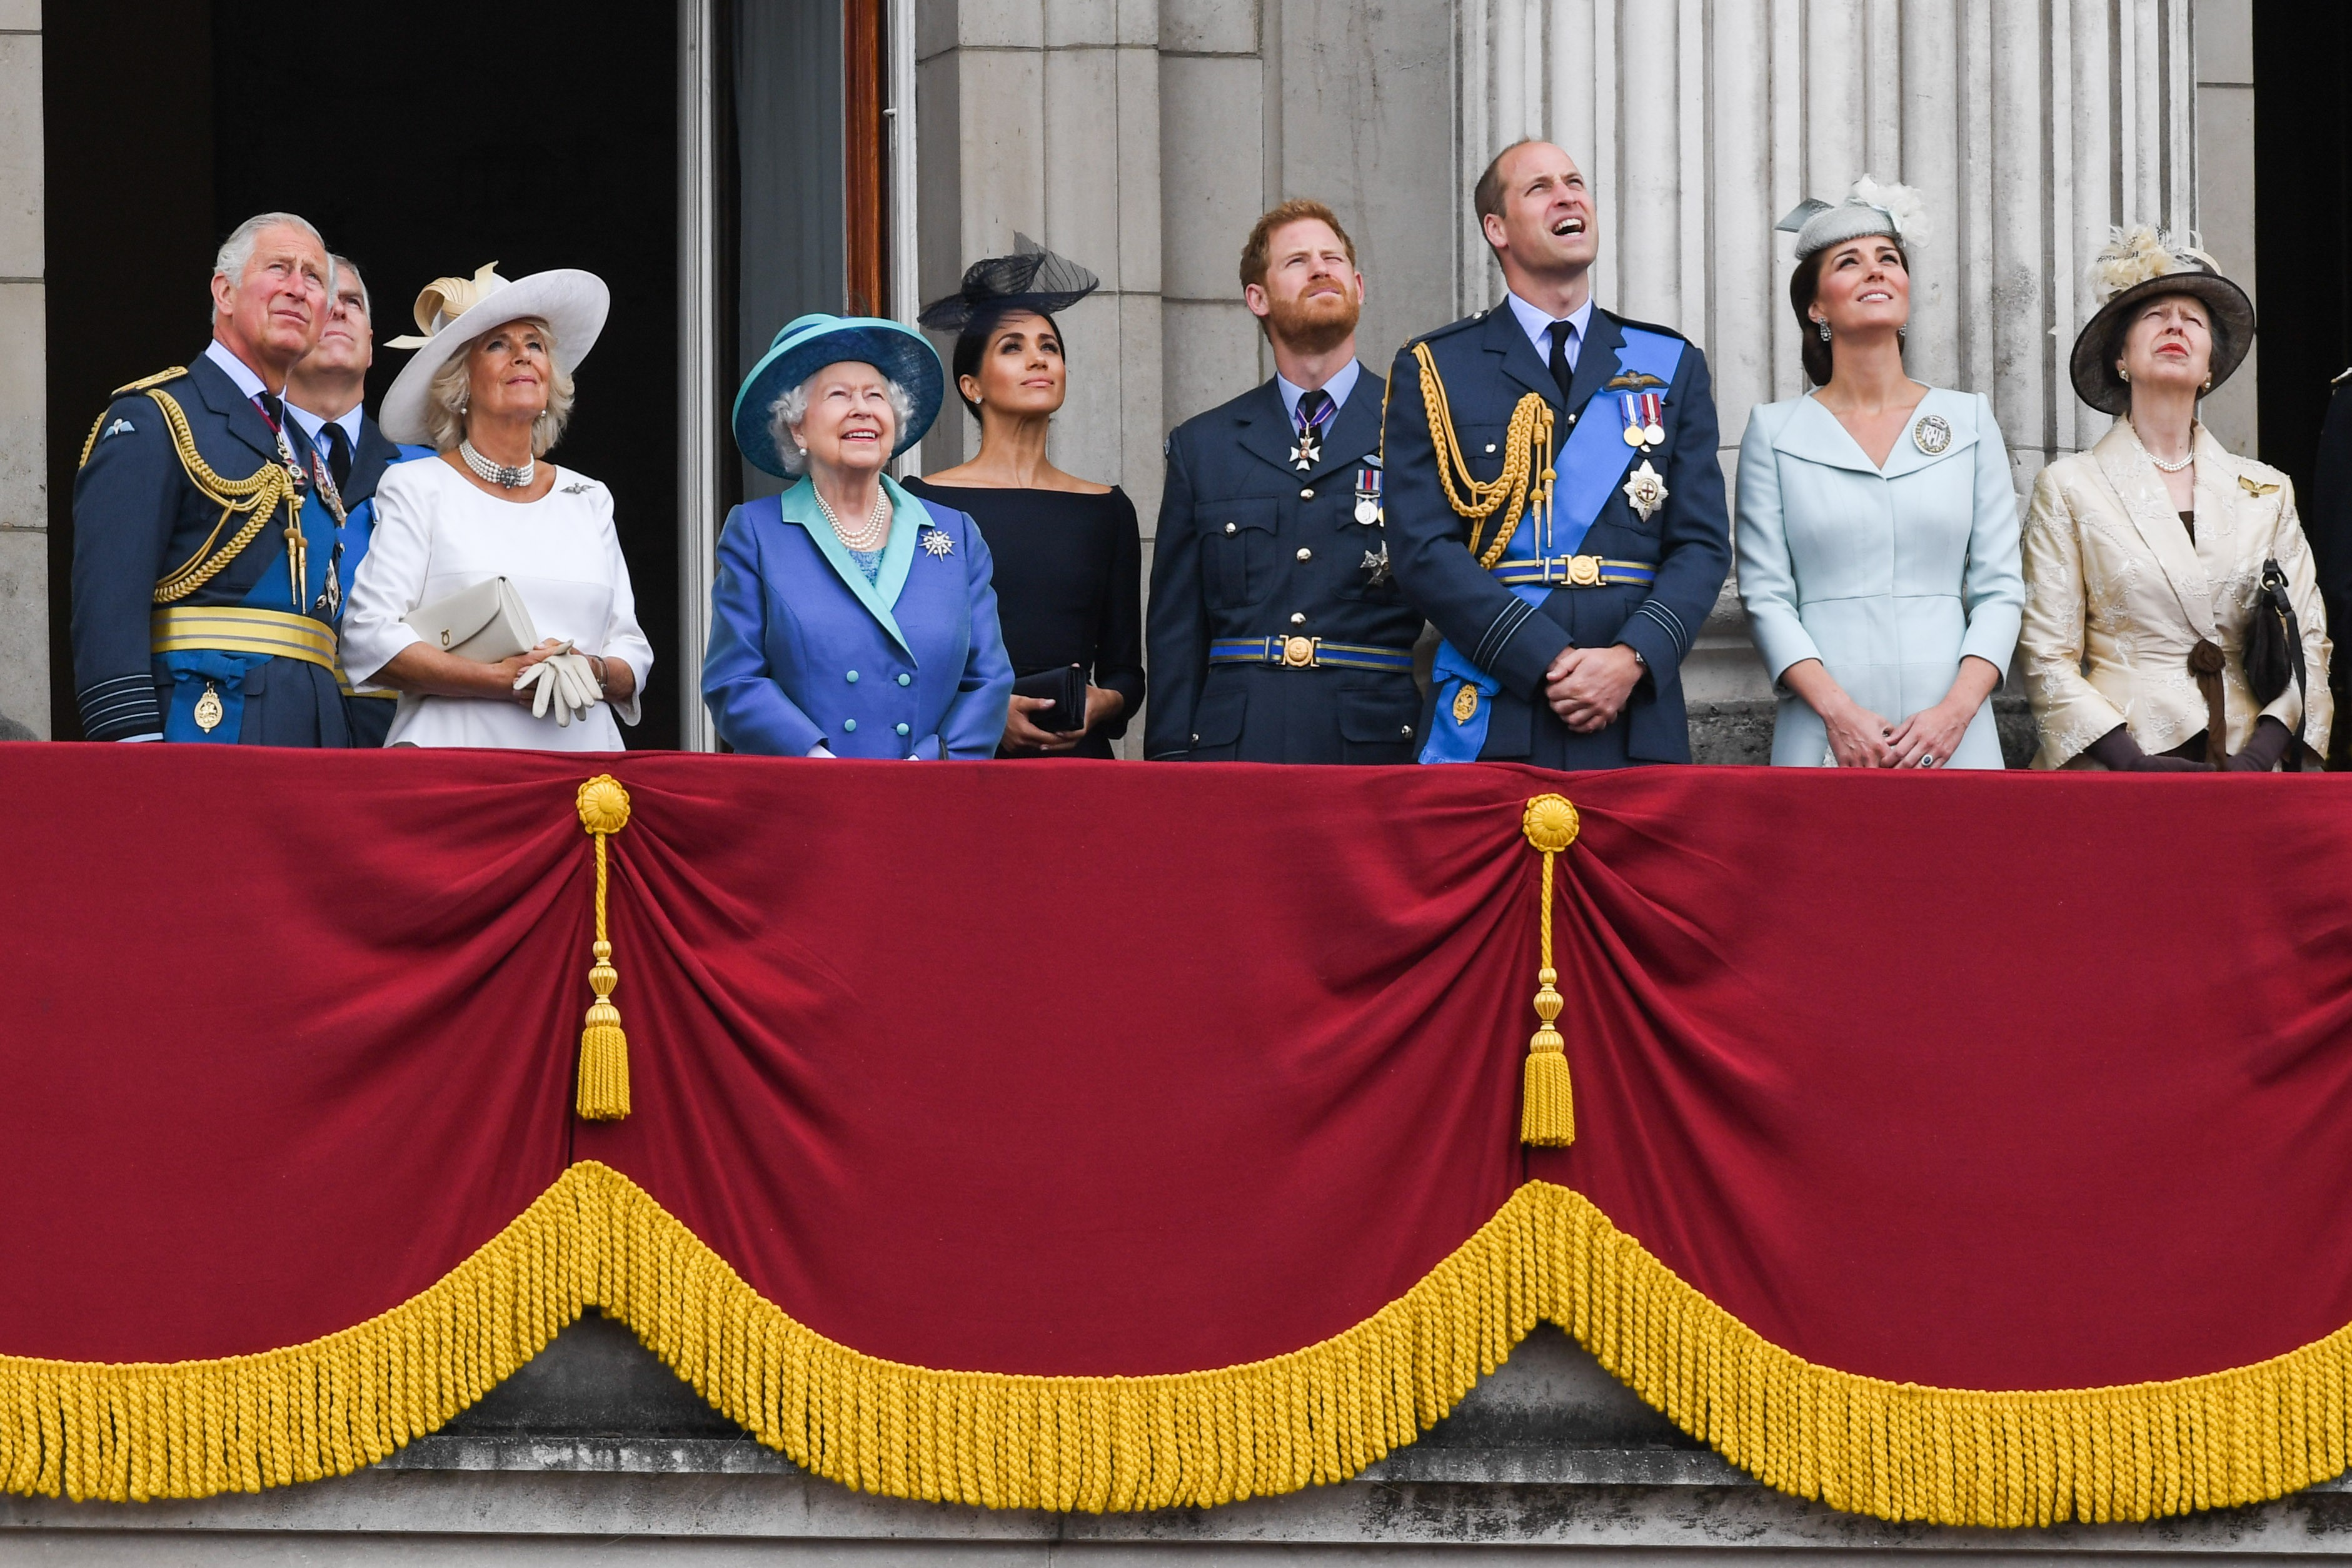 Queen Elizabeth II at a royal event with Prince Charles, Prince William, Duchess Kate Middleton, Prince Harry and Duchess Megan Markle and other members of the British Royal Family (Photo: Getty Images)